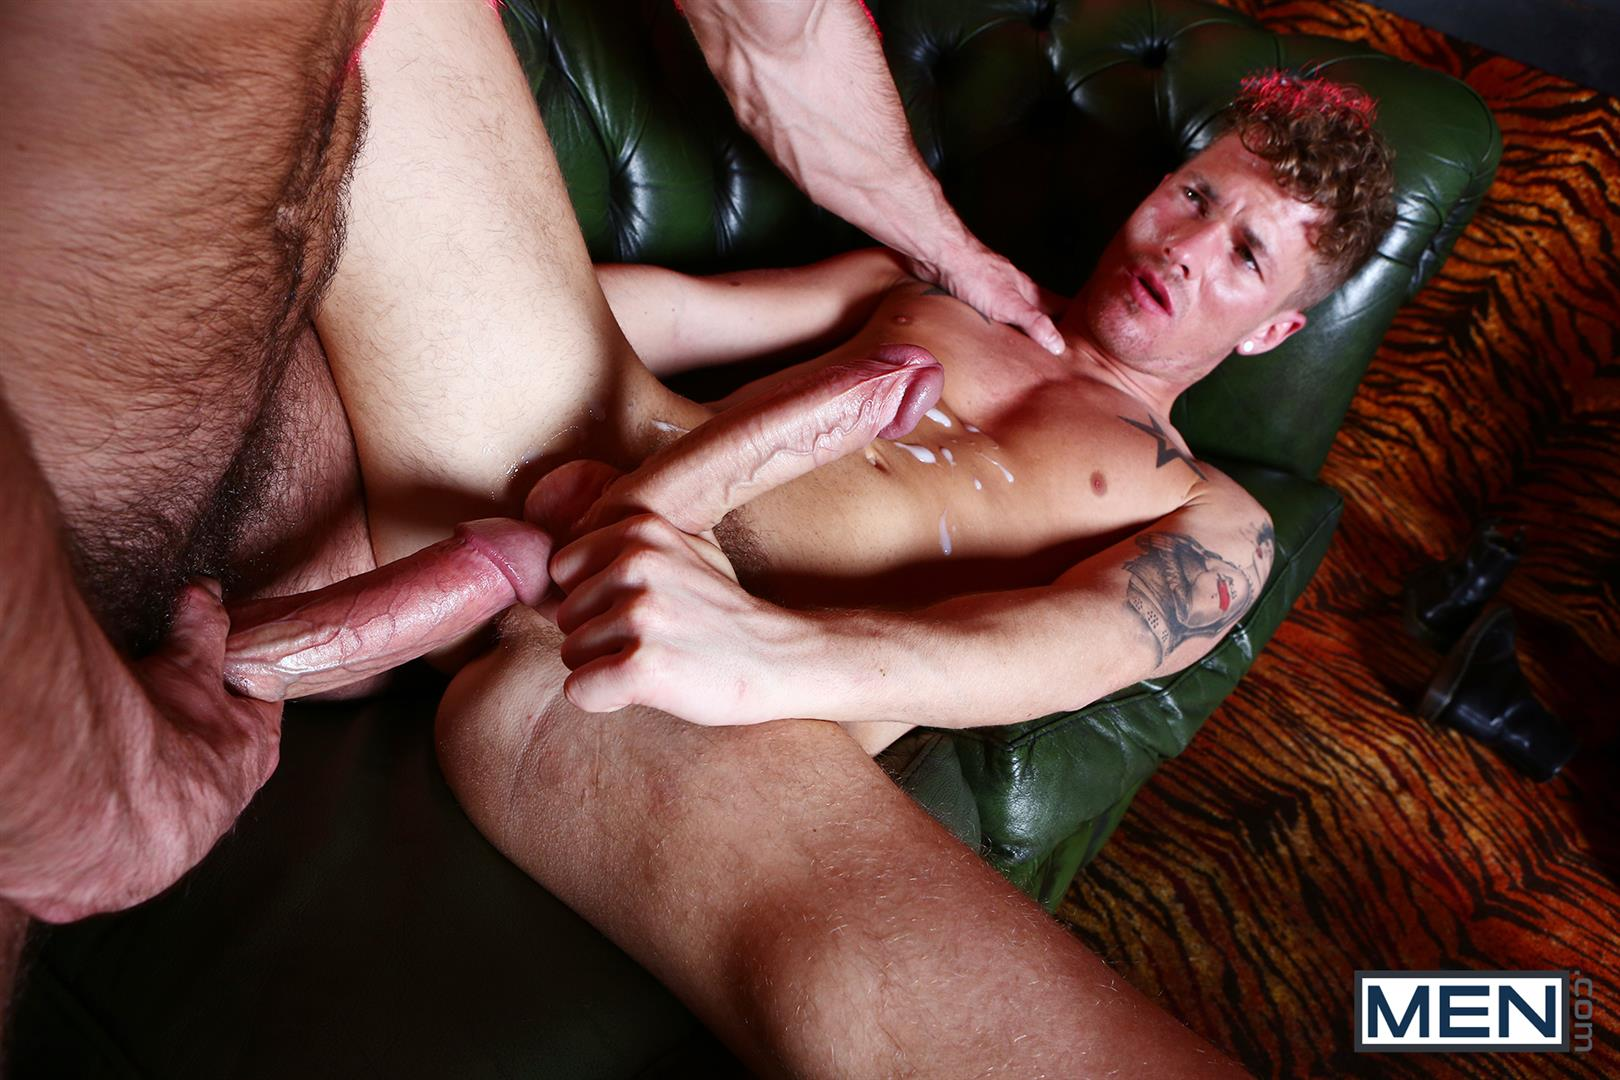 Big Dick Gay Sex Free